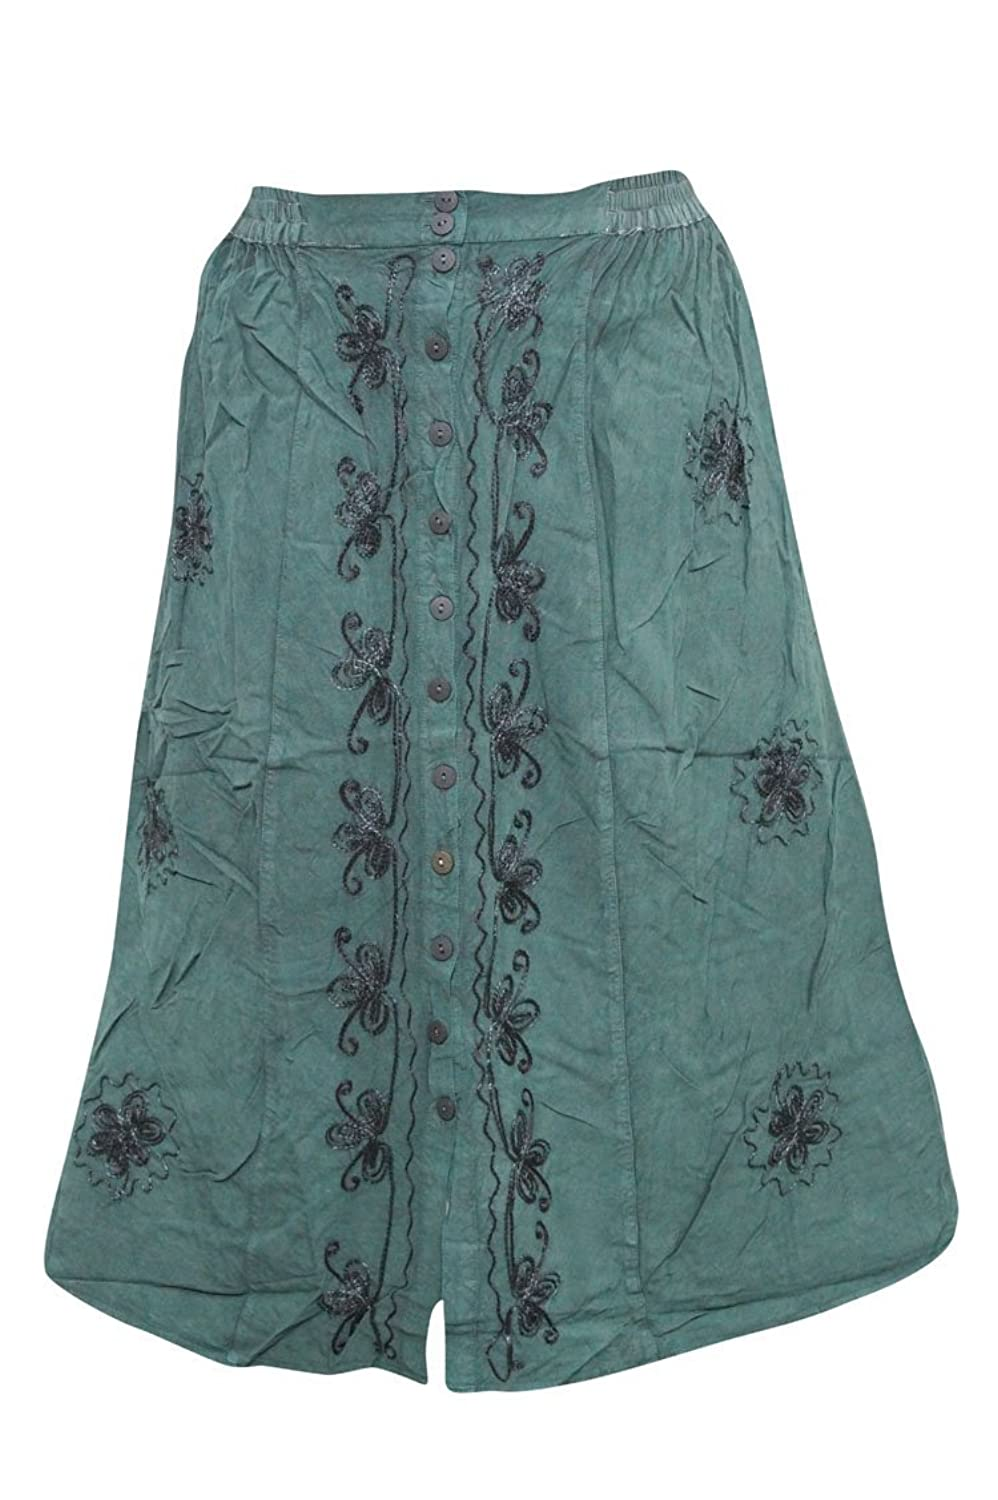 Mogul Interior Women's Skirt Embroidered Rayon Button Front Bohemian Green M